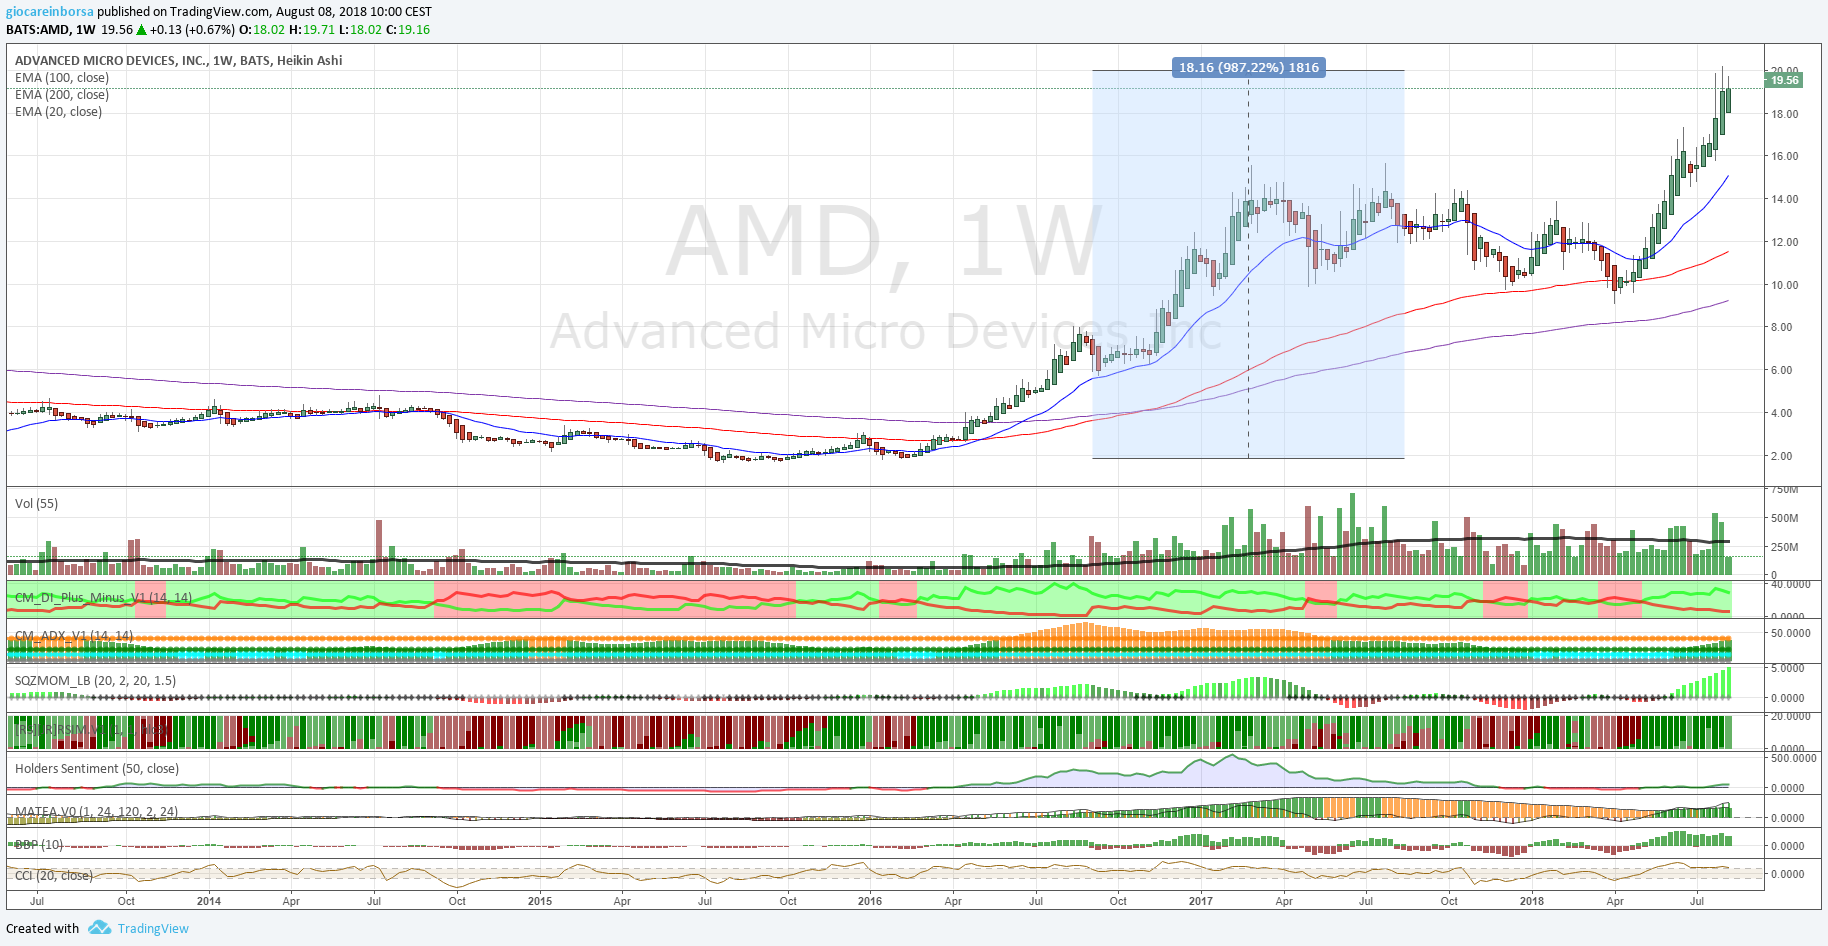 Azione Advanced Micro Devices (AMD), segnale di forza!